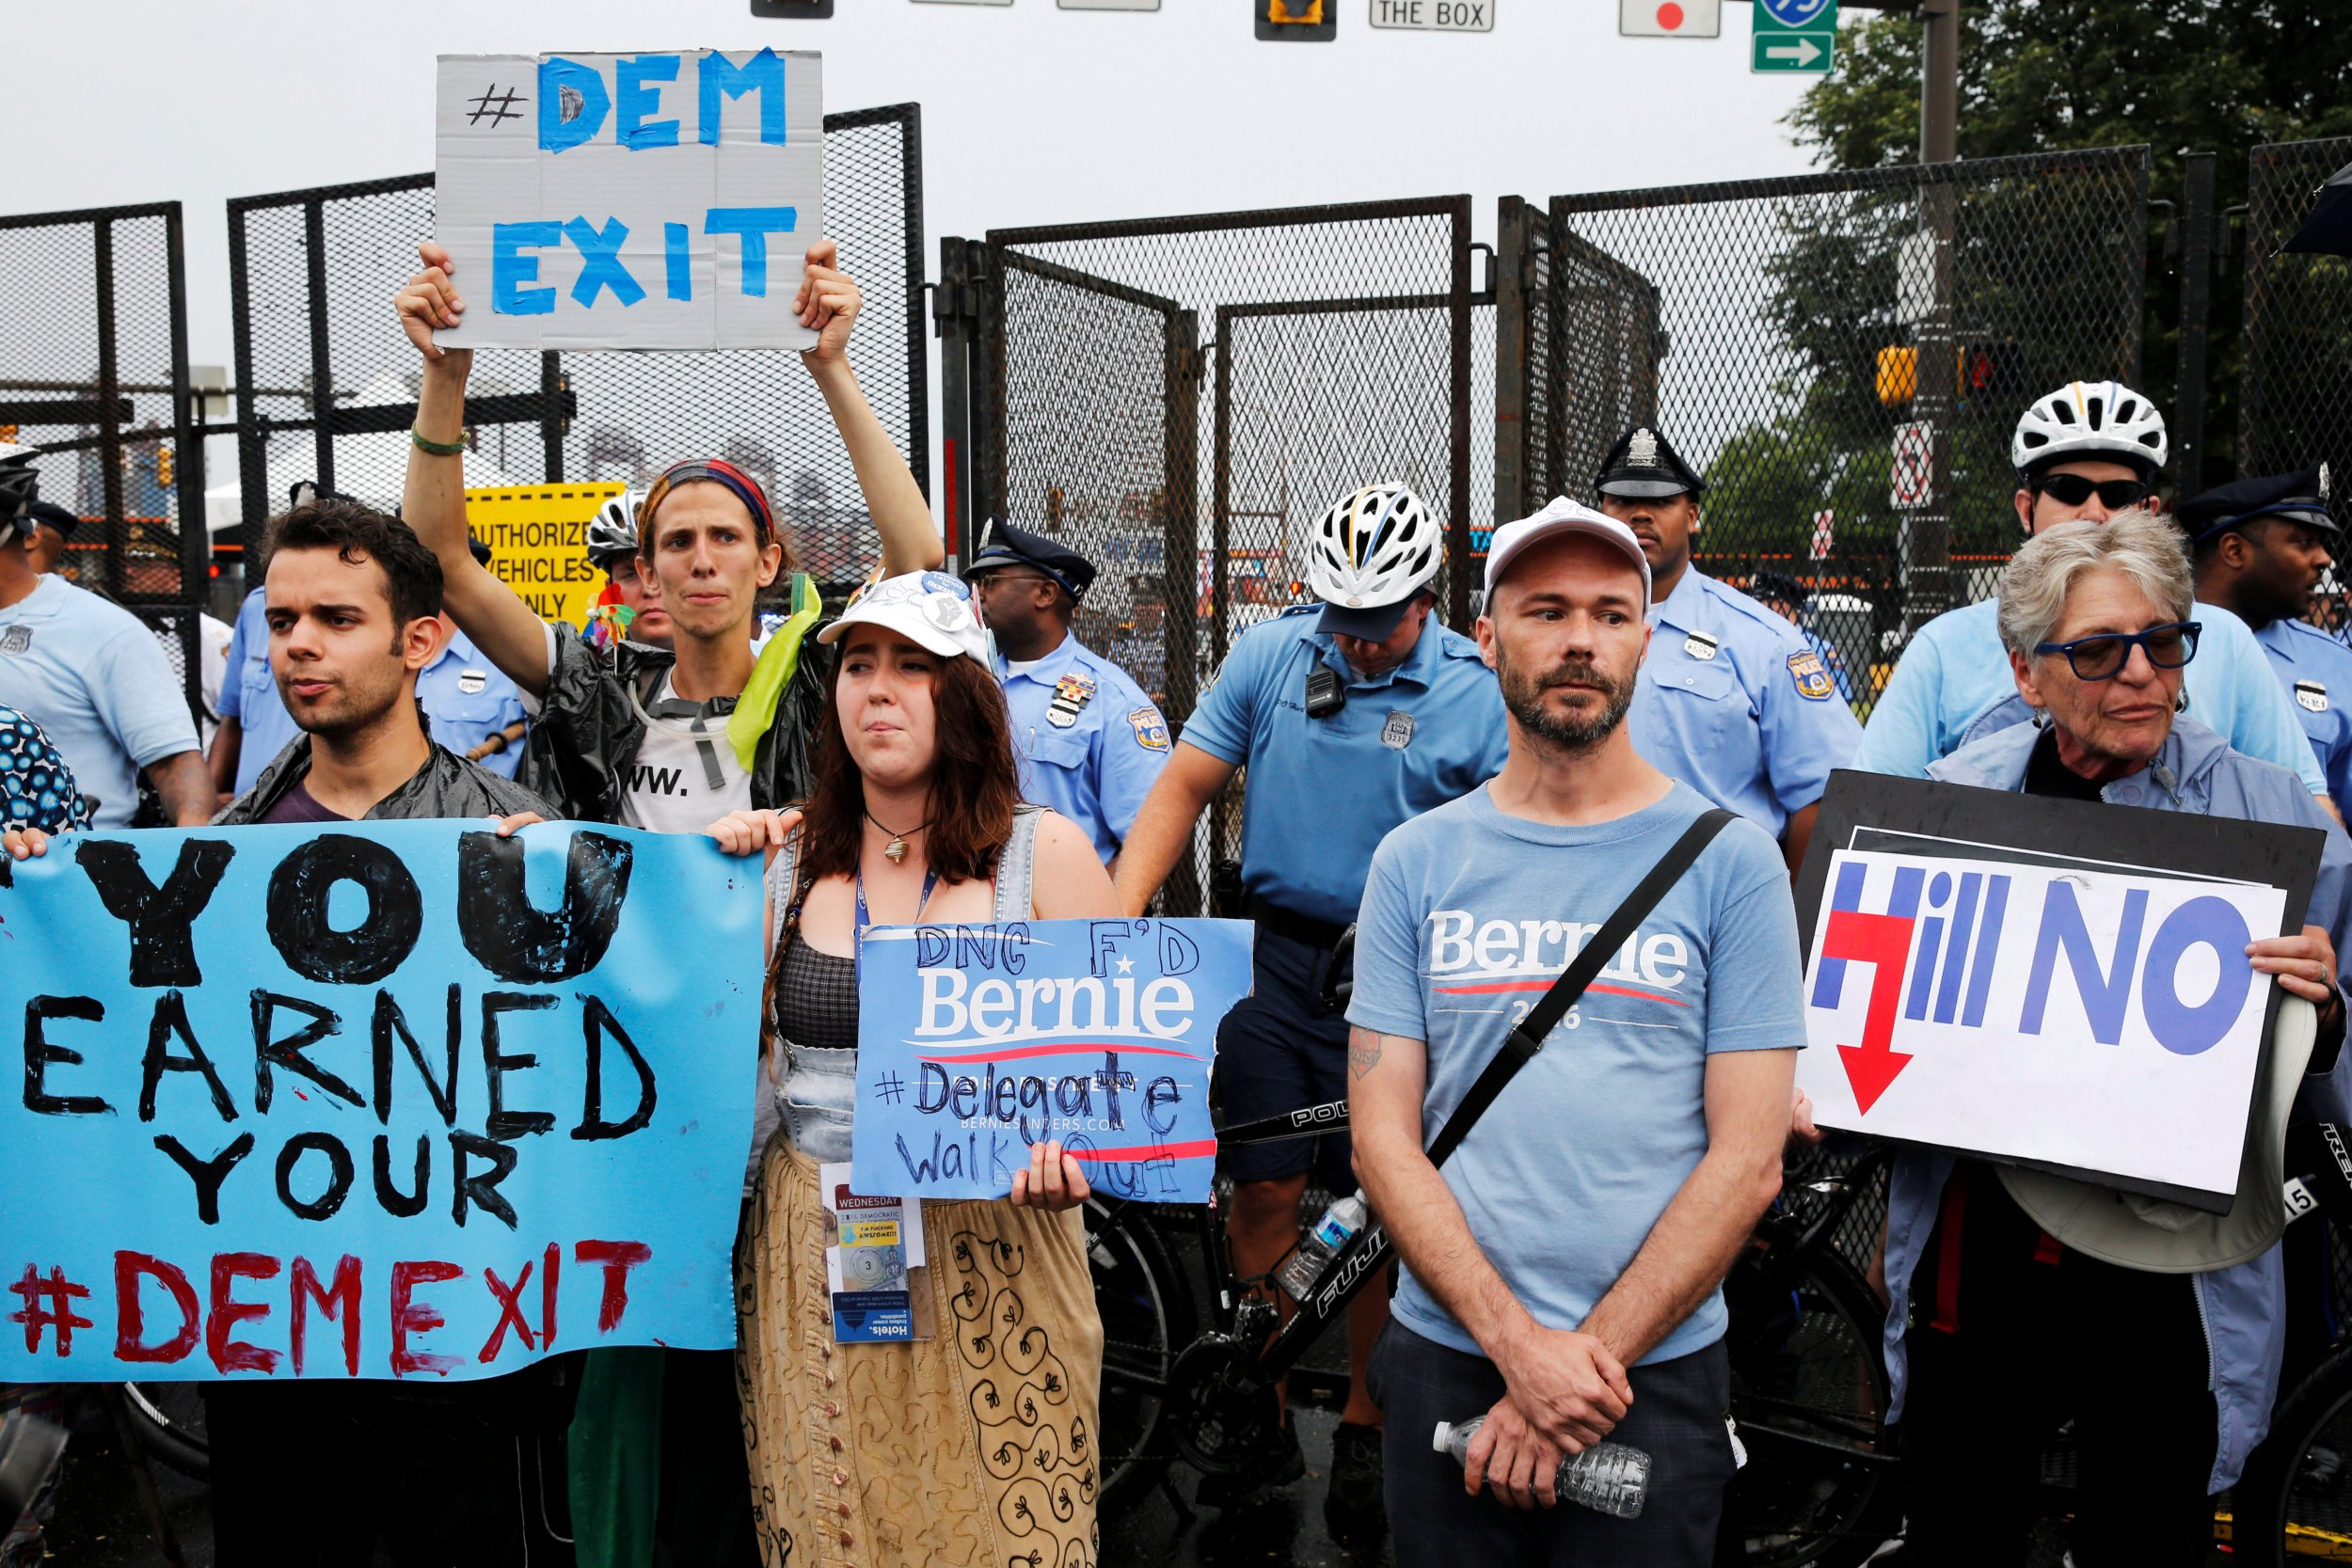 Leaked DNC Emails Confirm Democrats Rigged Primary Reveal